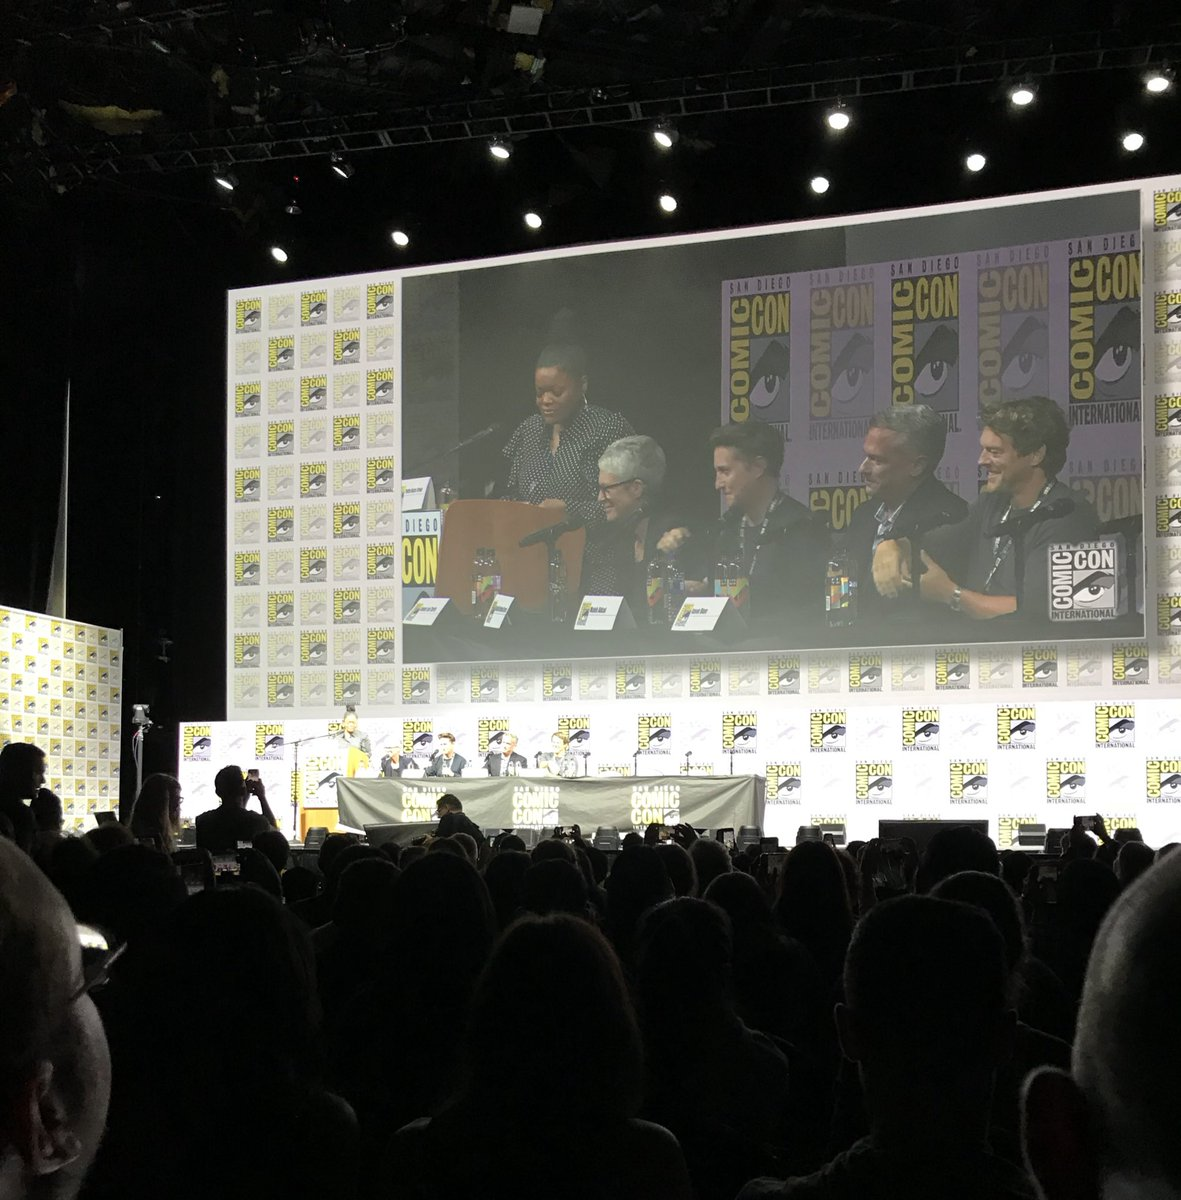 #SDCC2018 Thank You Hall H for a great reception for @halloweenmovie  today. Halloween fans are the greatest!